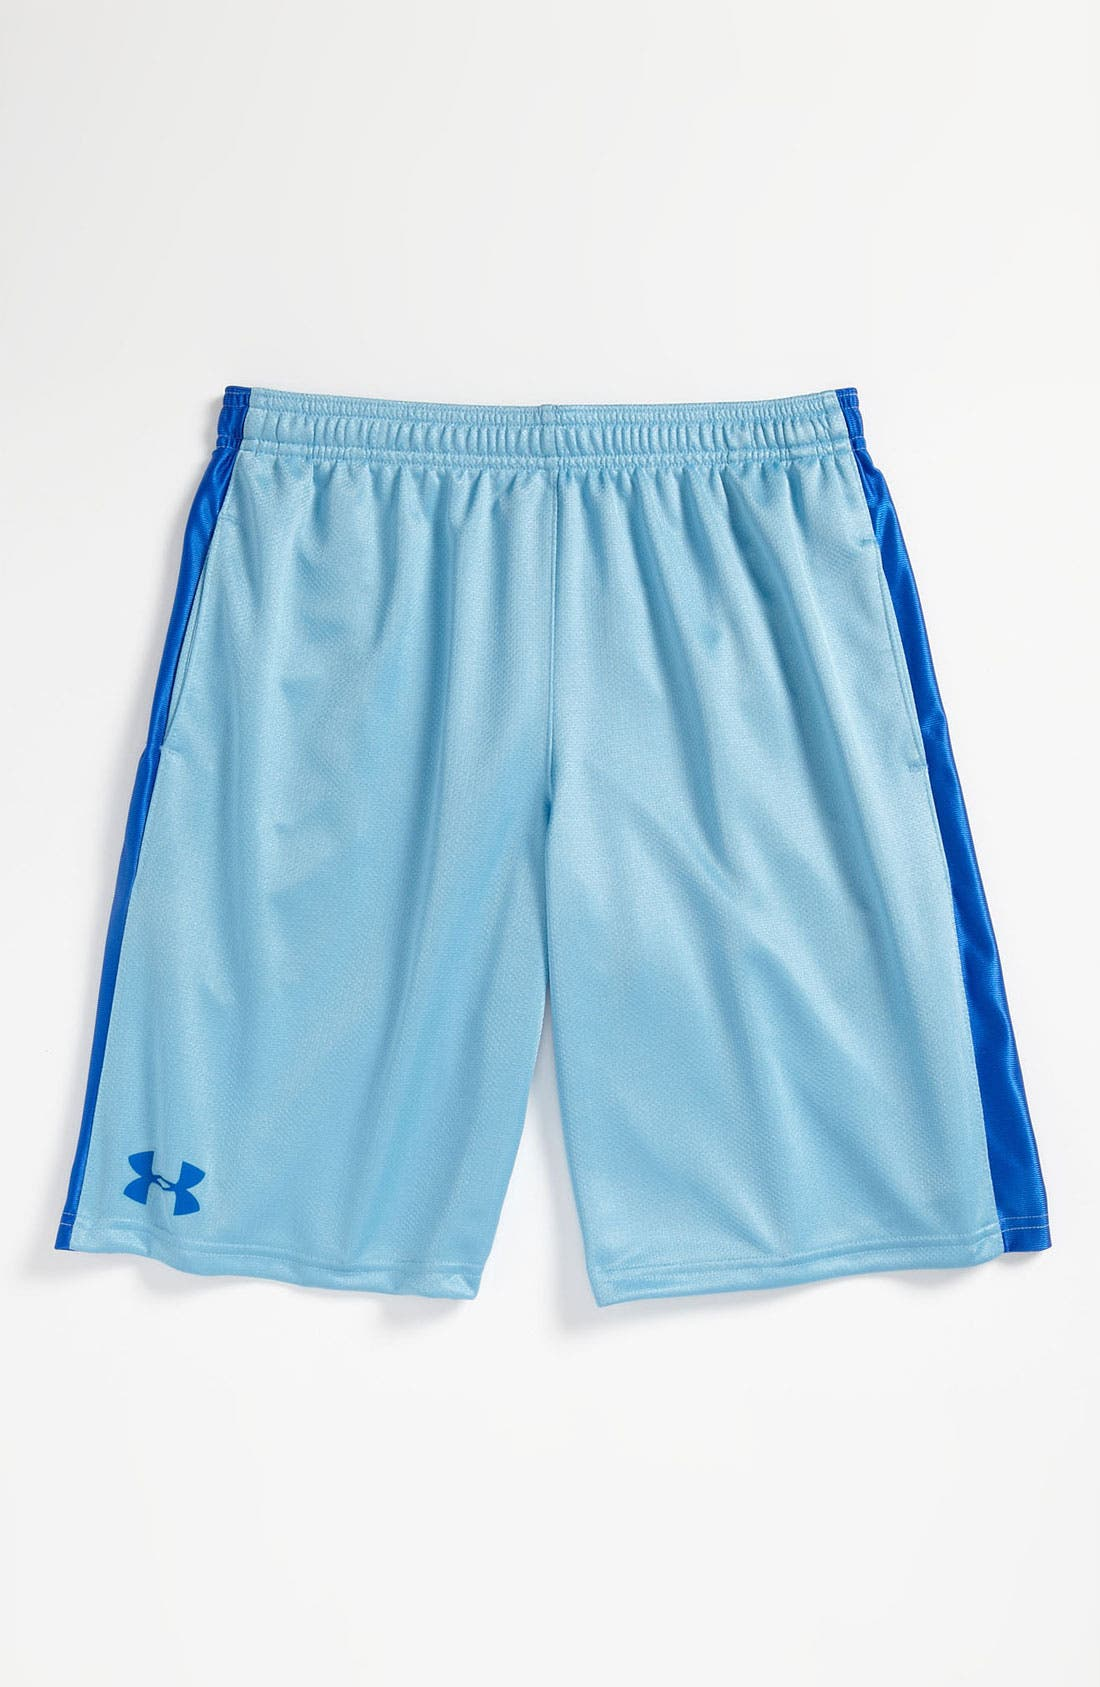 Main Image - Under Armour 'Ultimate' Training Shorts (Big Boys)